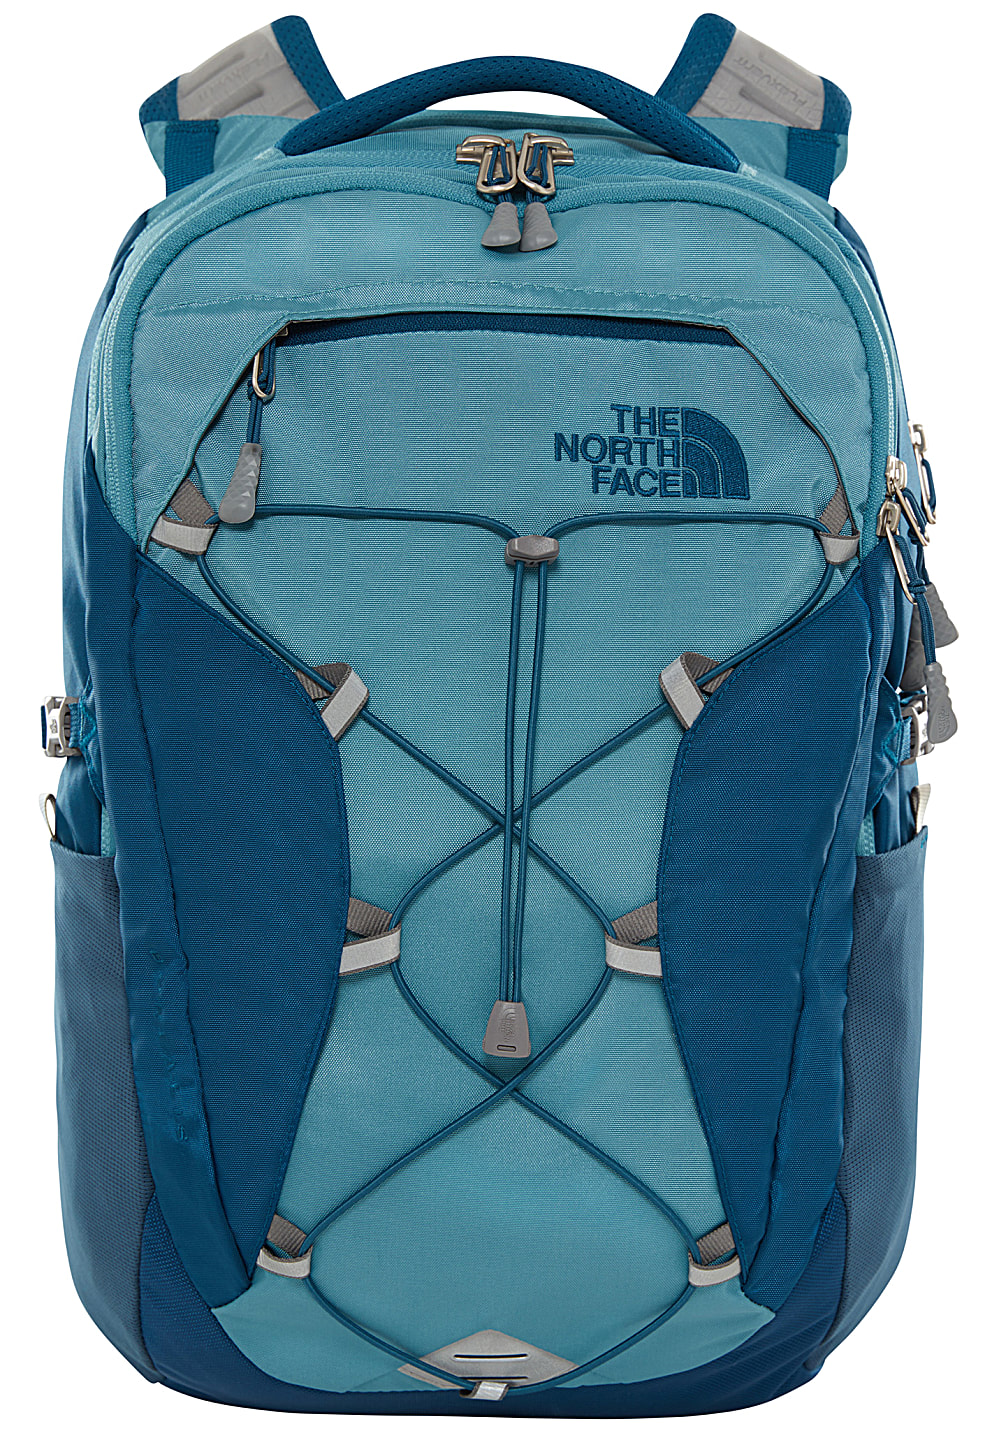 premium selection 6c831 803c7 THE NORTH FACE Borealis 28L - Backpack for Women - Blue